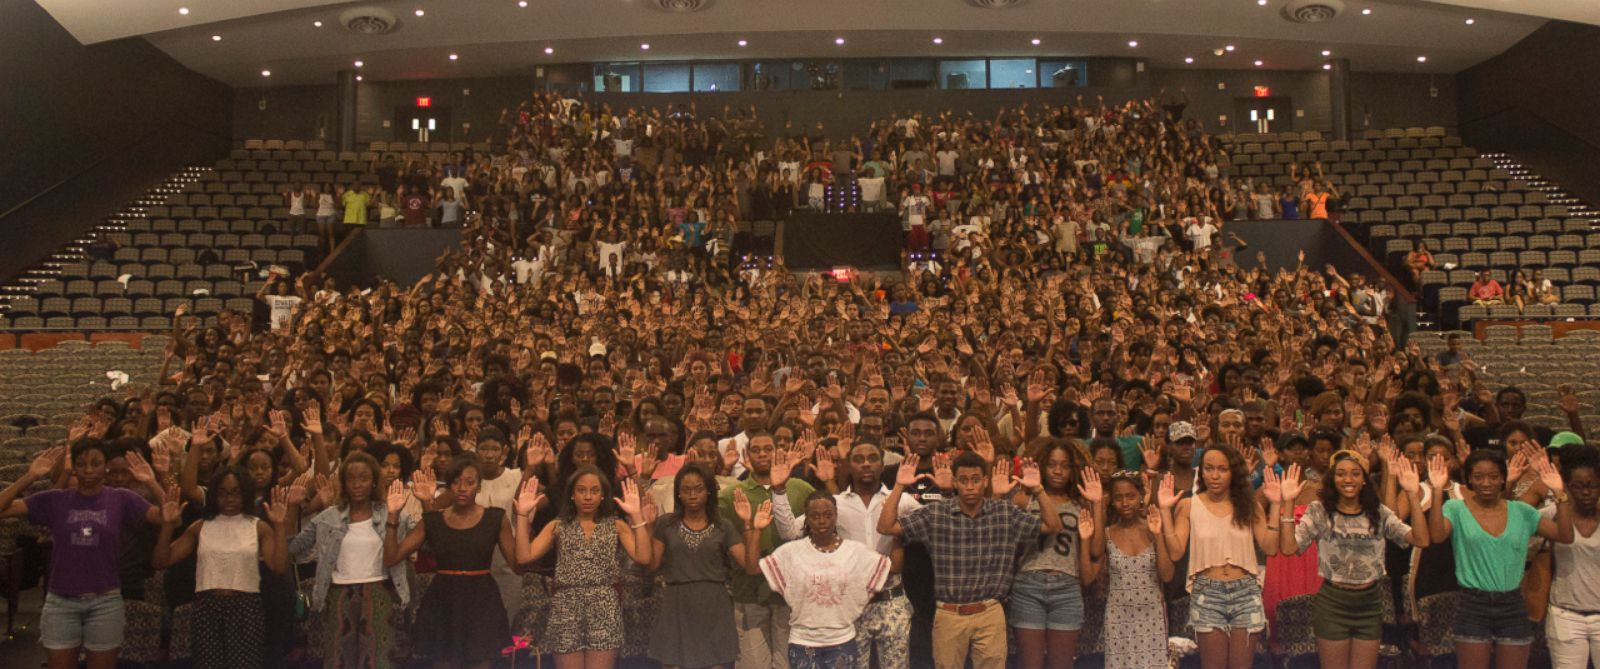 PHOTO: Howard University students posed for a photo with their hands up in surrender pose in honor of Missouri teen Michael Brown, who was shot by a police officer Saturday while holding his hands up, according to witnesses.